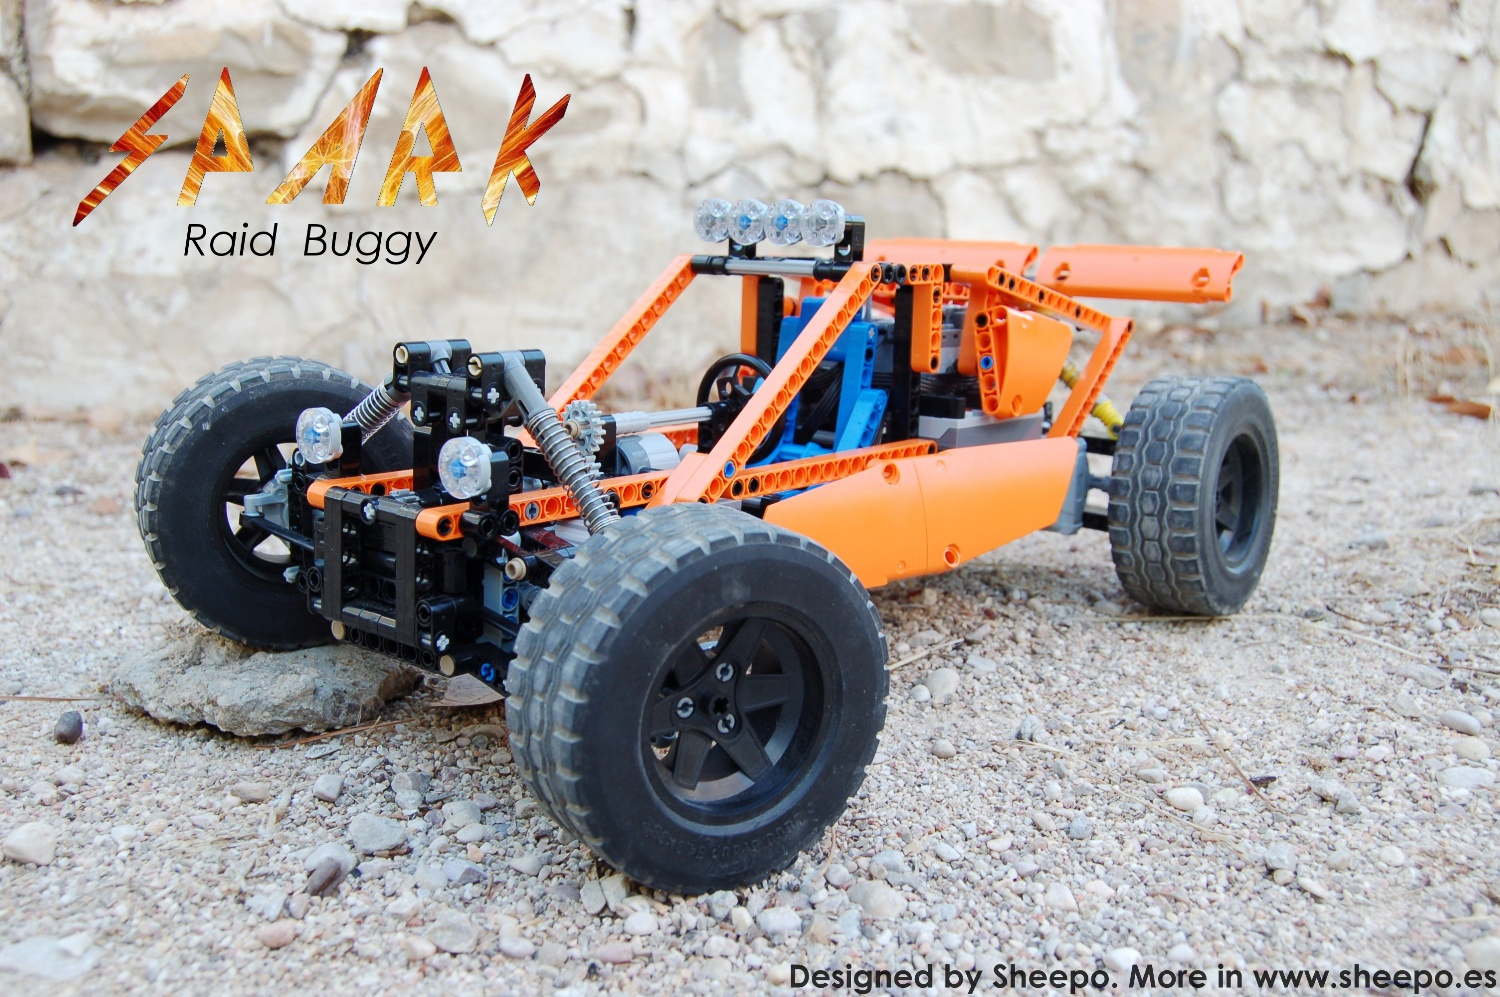 rc nitro car with Sheepo on Watch besides 256255 Mtx 5 A 35 as well Hot Bodies Hb28503 26 Motor Review besides 4029 Rc Cars 4 also T42015 AlexanderHagberg Hrotovice2014120607.